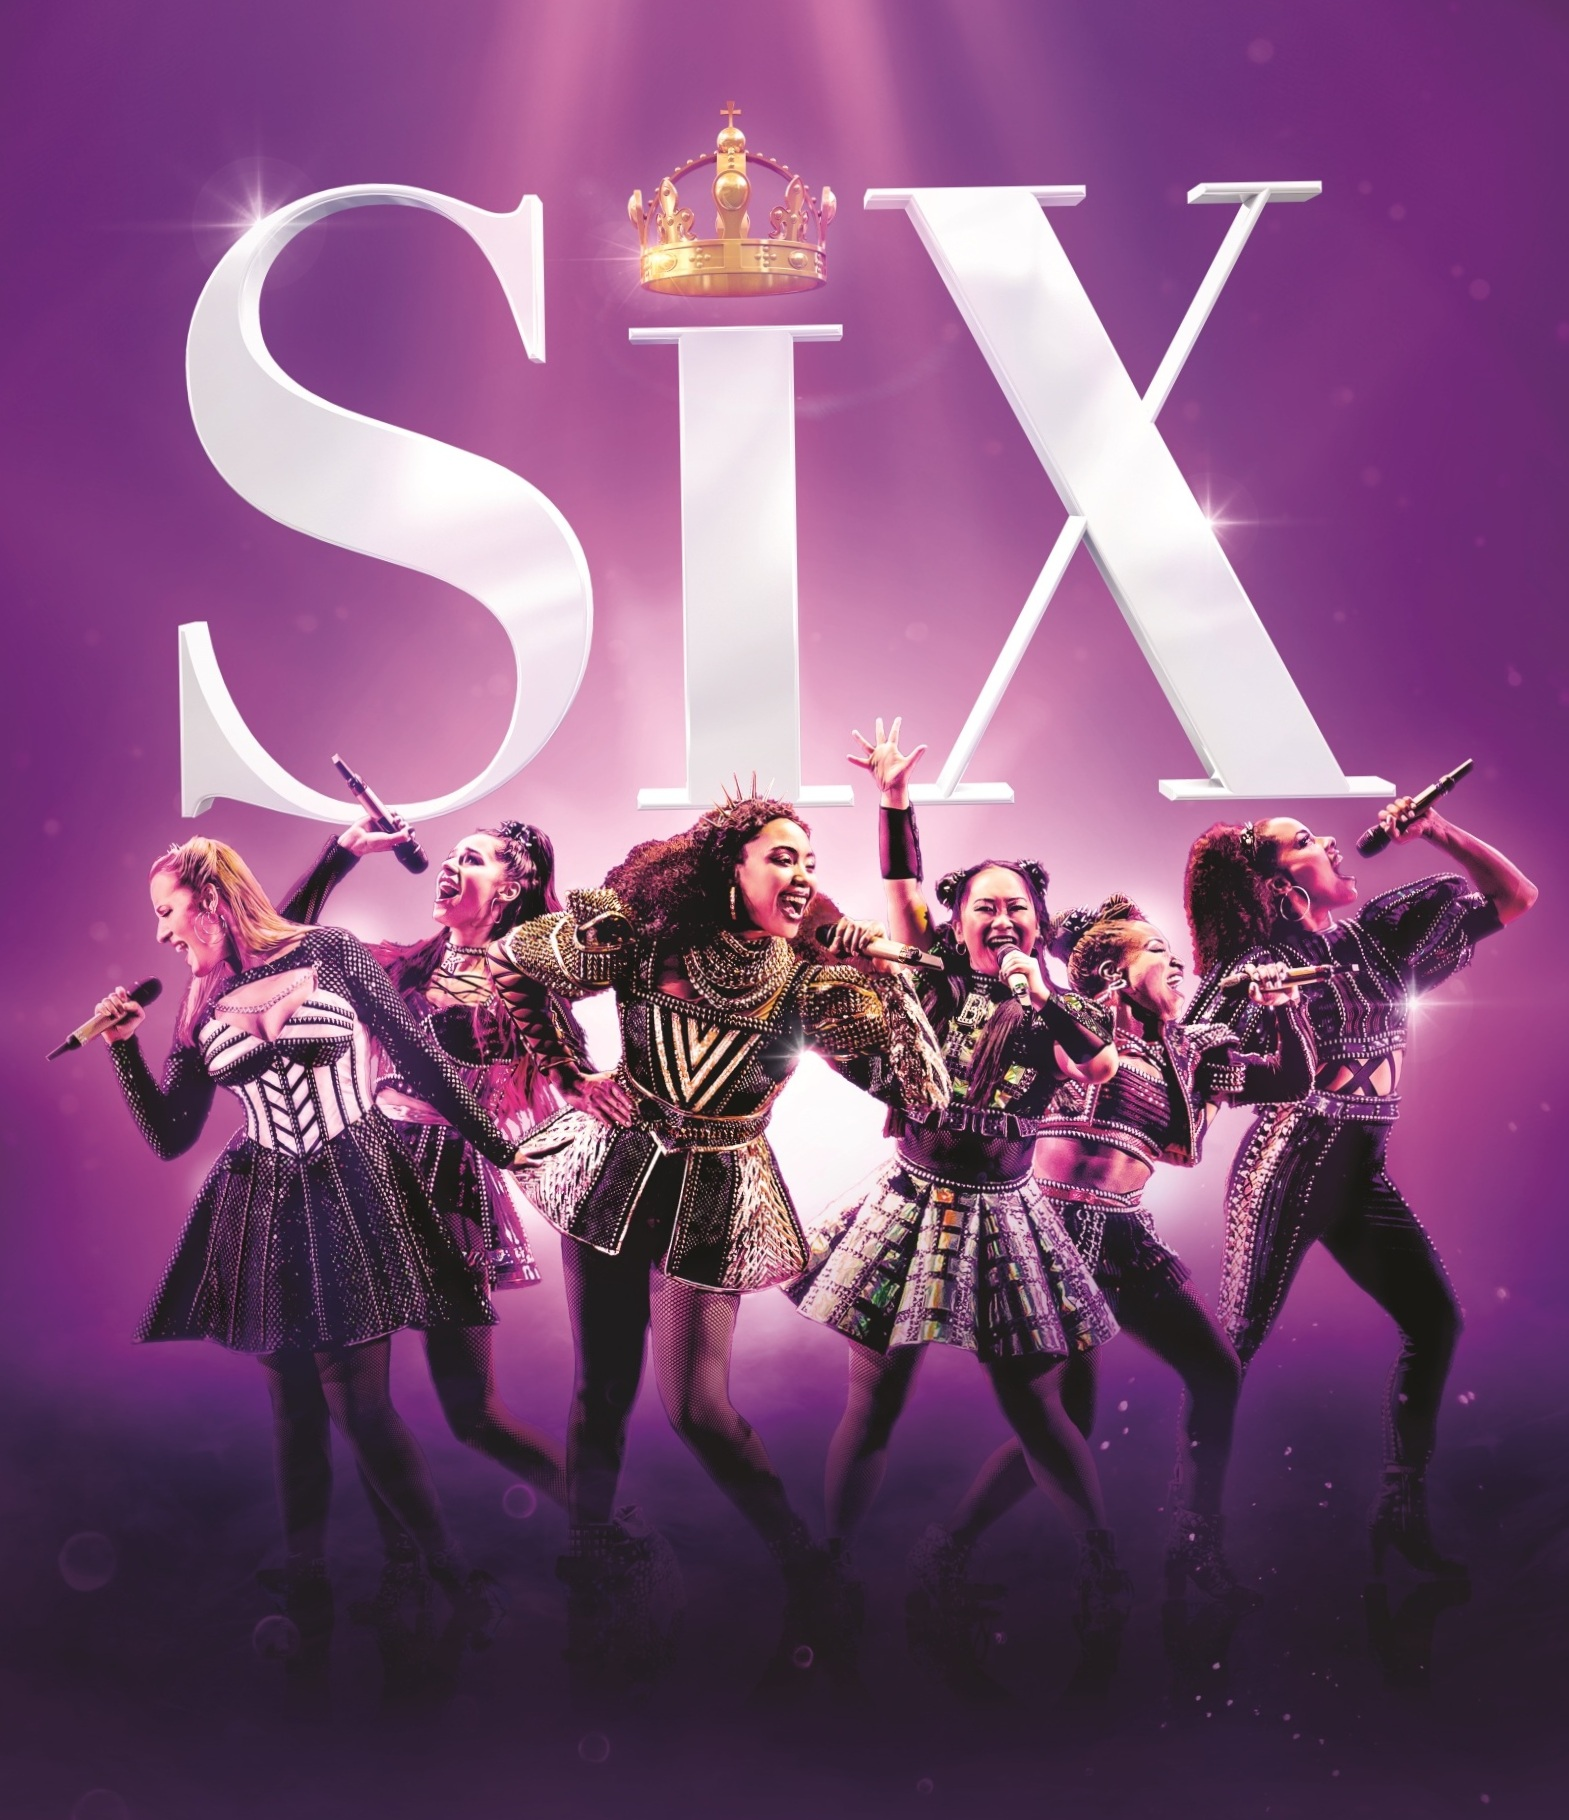 """- This spring, Anna joined the Broadway bound premier of the critically acclaimed new musical SIX as Catherine Parr, following its West End debut. The six wives of King Henry VIII join forces for an electrifying musical celebration of empowerment—shining a spotlight on the women who are so much more than the history books might lead us to believe. The show opens on Broadway at the Brooks Atkinson Theatre in March, 2020. """"The wickedly smart lyrics are well set on tunes that are both catchy and meaty; the cast of terrific singers sells them unstintingly, straight to the joyful finale."""" - Jesse Green, NY Times""""If 'Hamilton' met 'The Tudors', focused only on the queens exuded nothing but femme power and was styled after Beyonce's 'On The Run Tour II', you would have 'SIX'. And what a time you would have."""" - Amanda Finn, New City StageFollow Six's journey on Instagram at @sixthemusicalus"""